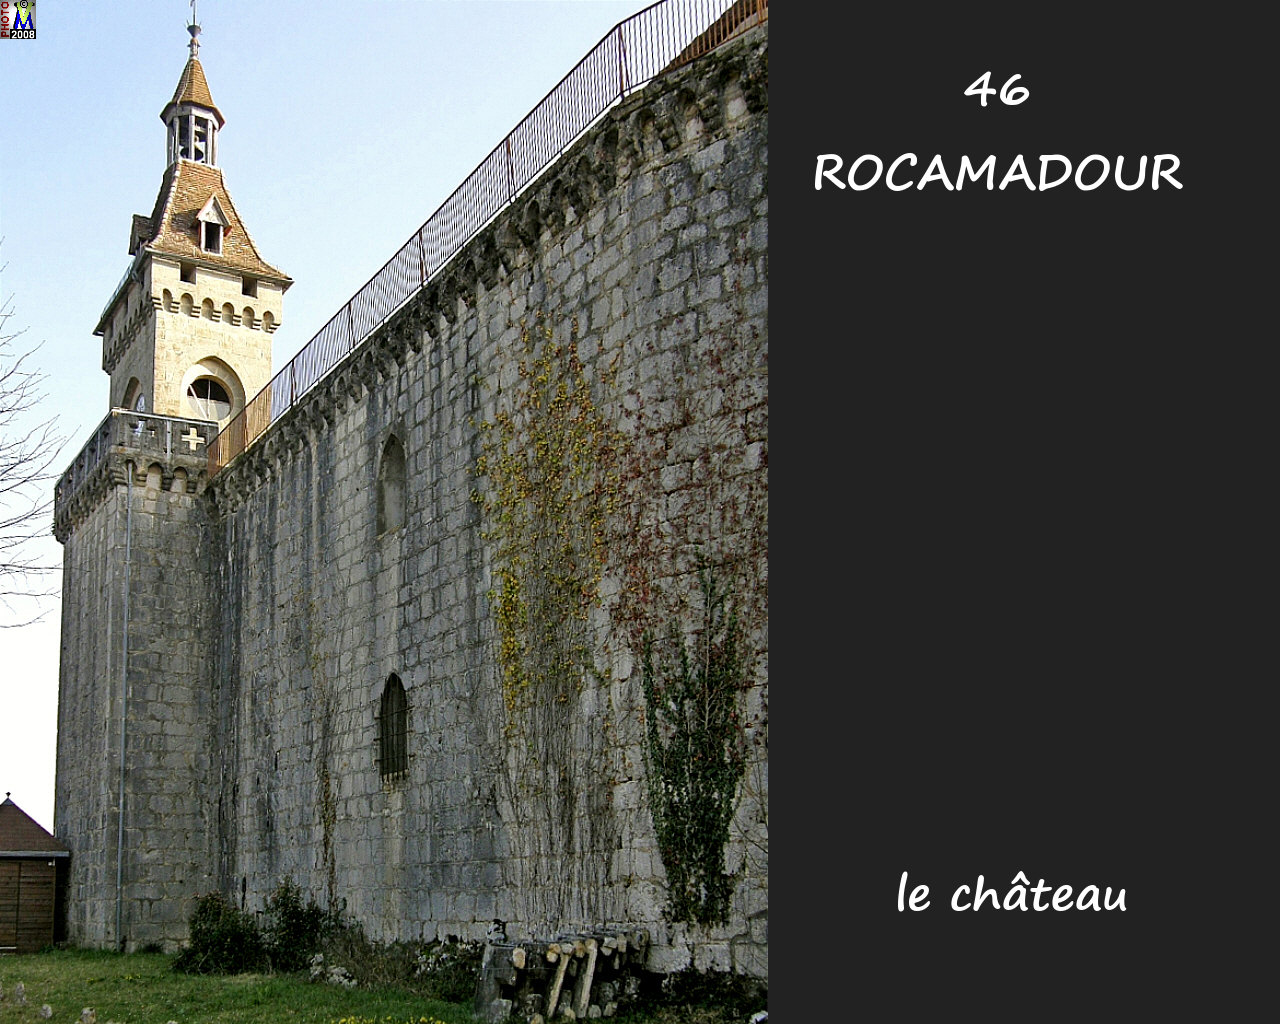 46ROCAMADOUR_chateau_110.jpg